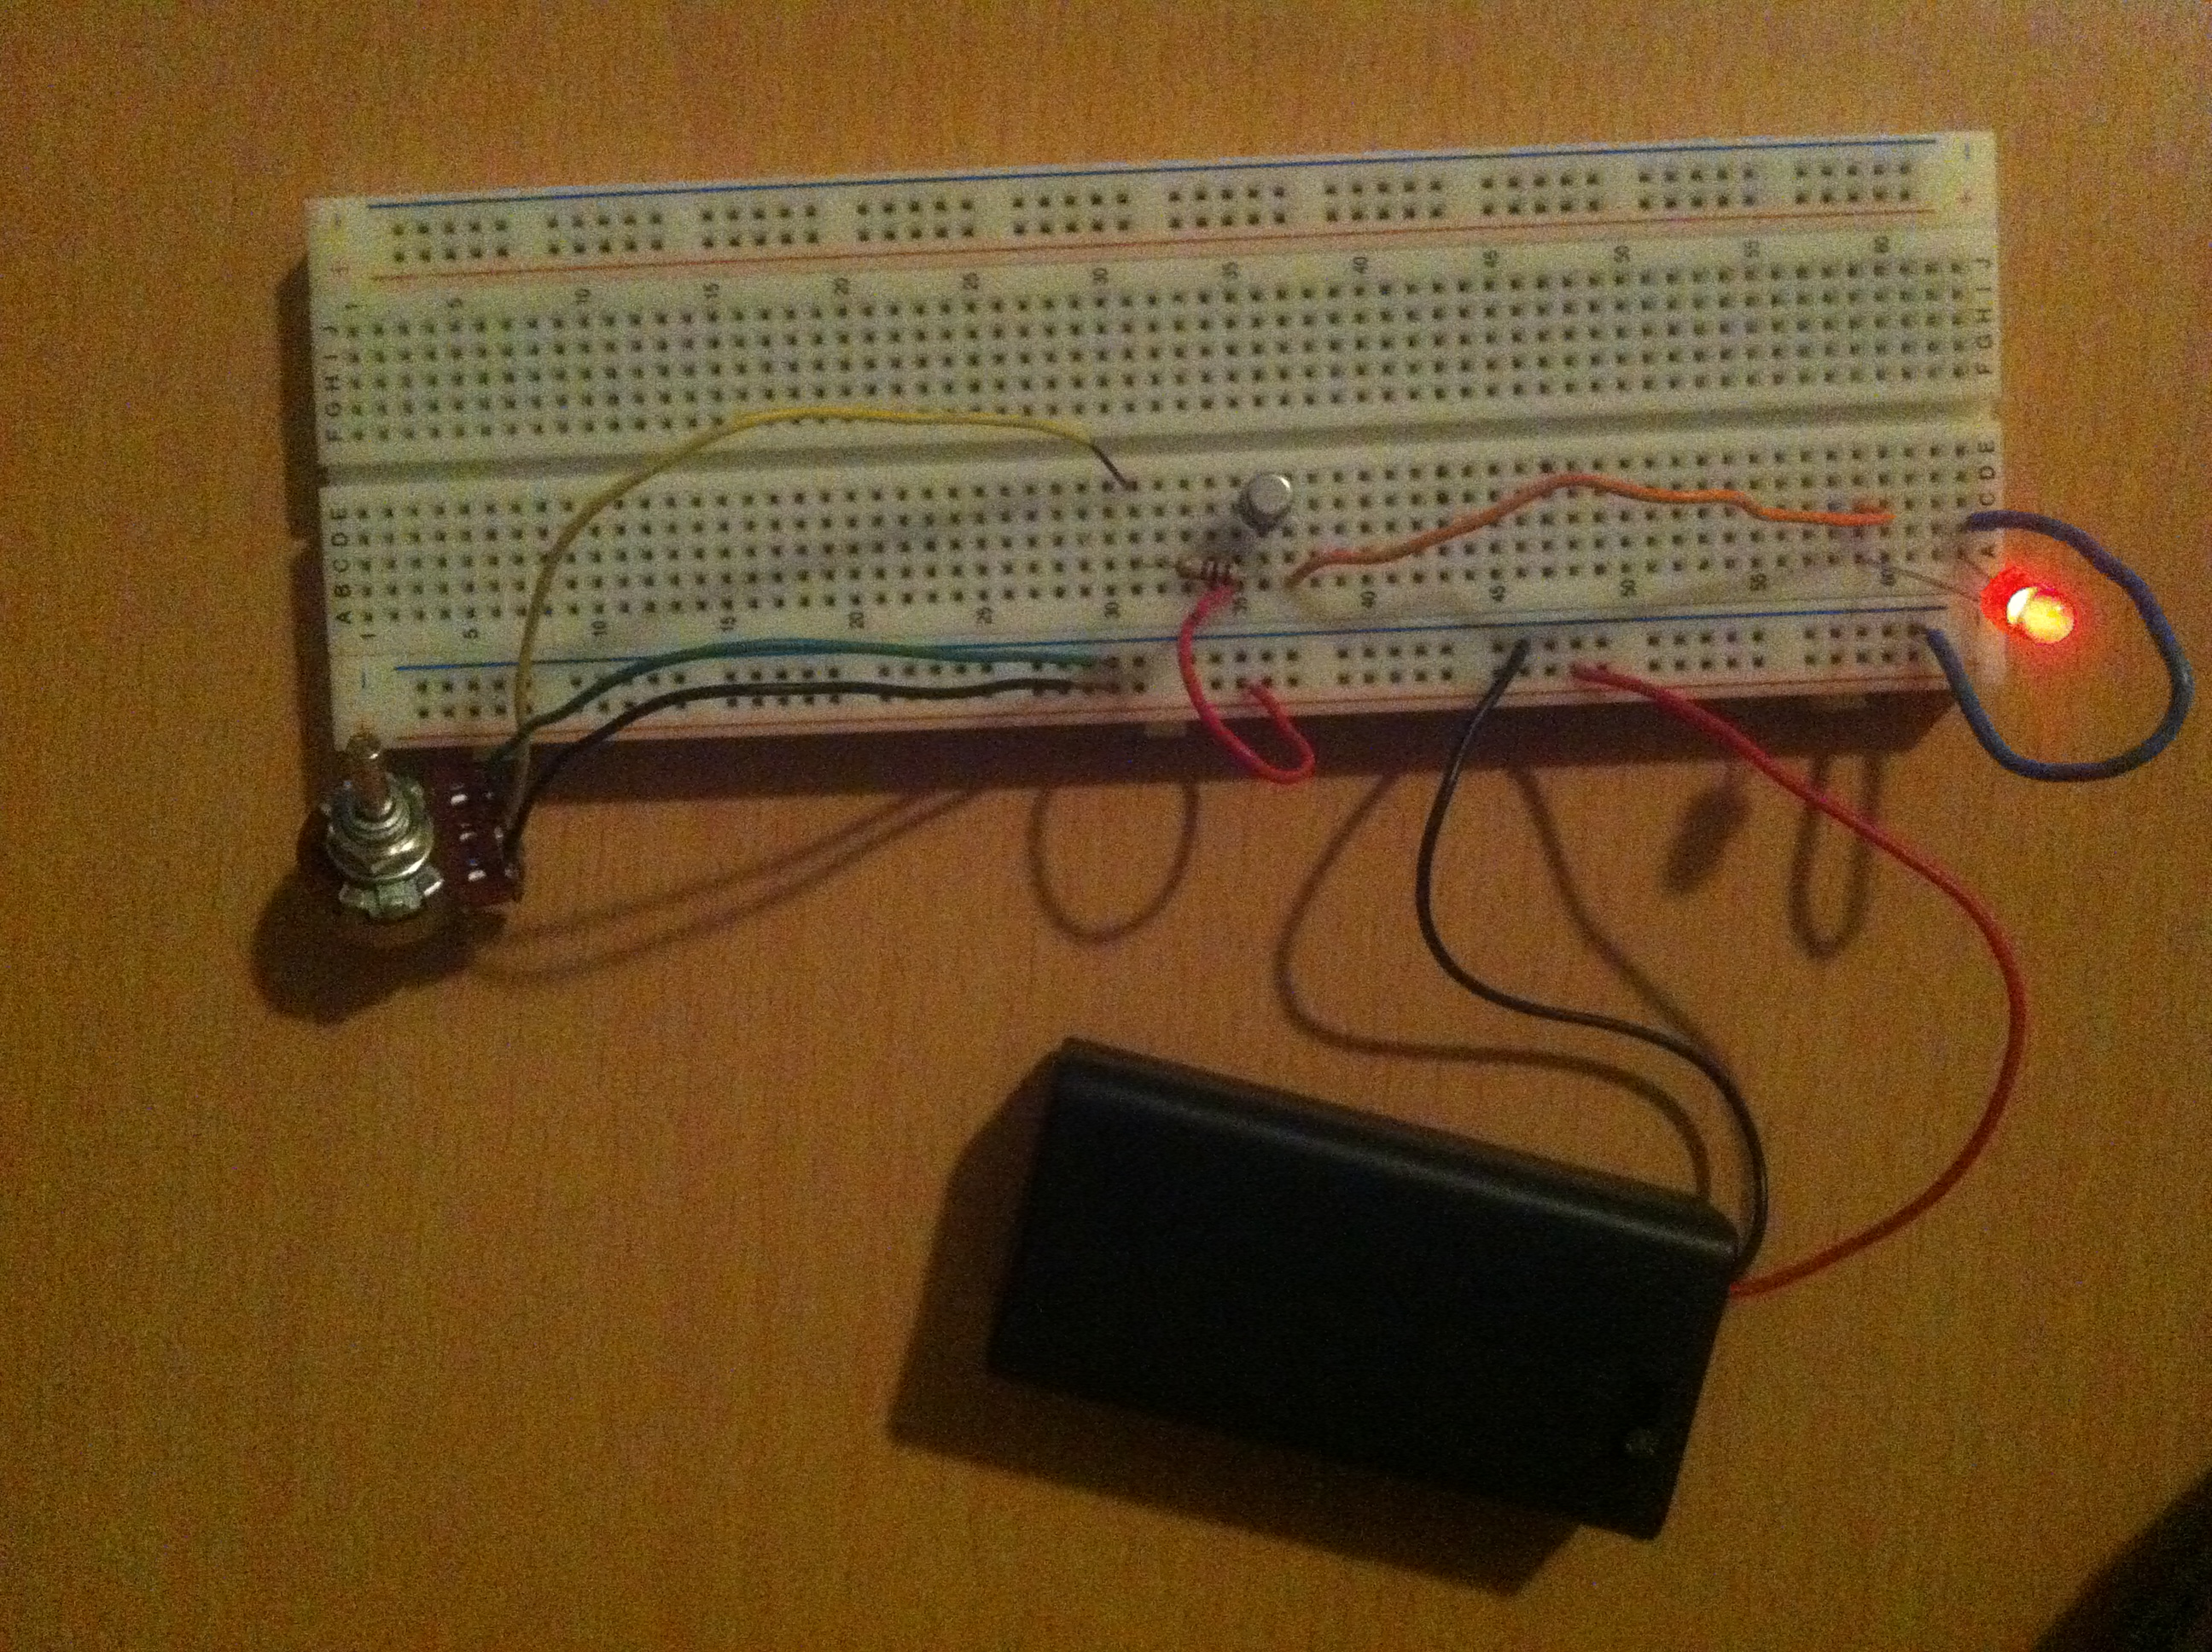 Transistor Current Amplifier Circuit Electrobotics Led On Breadboard Is Schematic Of Controlling Brightness